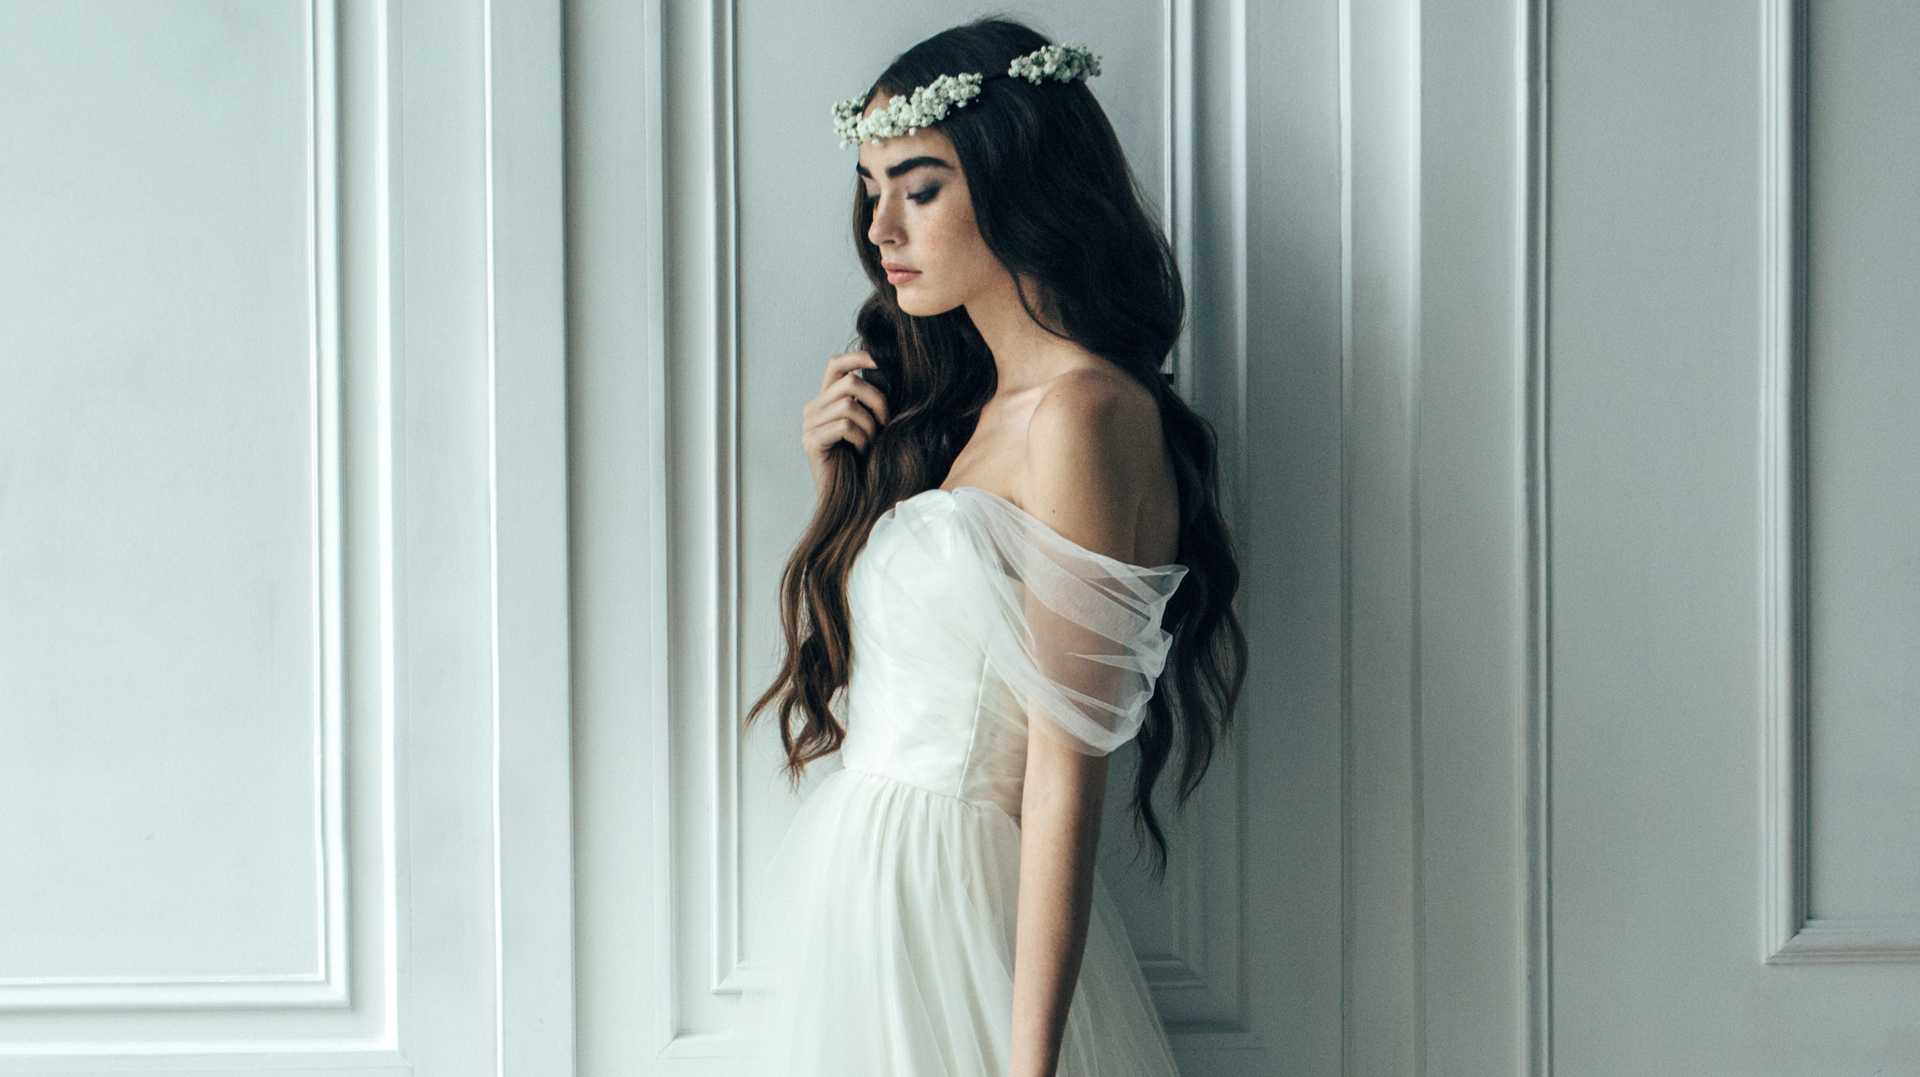 A Complete Guide To The Right Wedding Dress For Every Body Type